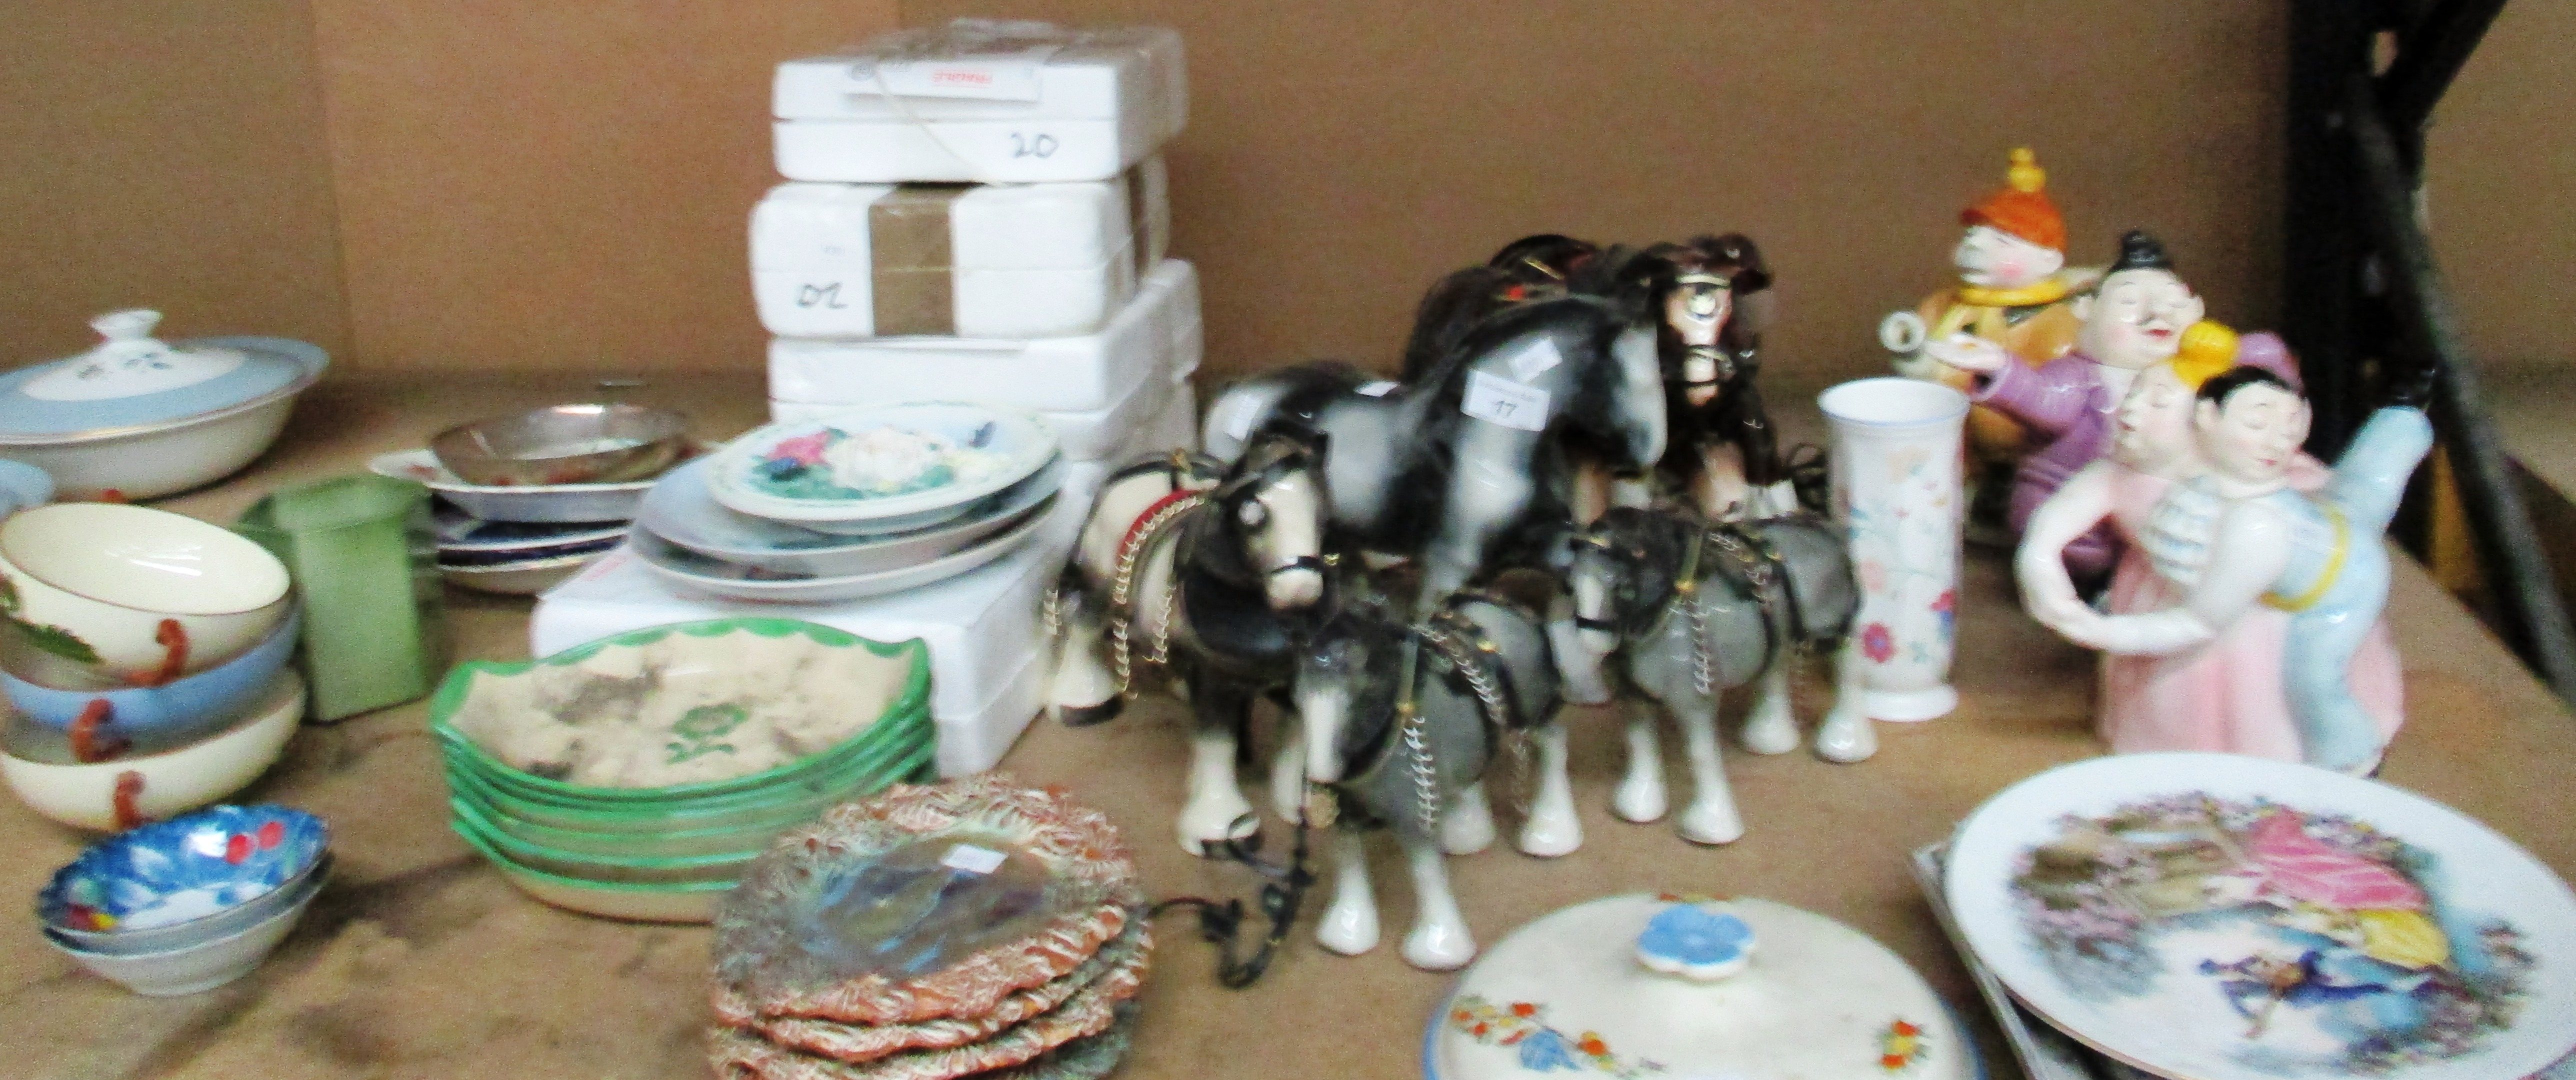 Lot 17 - A collection of novelty teapots, pottery shire horses,